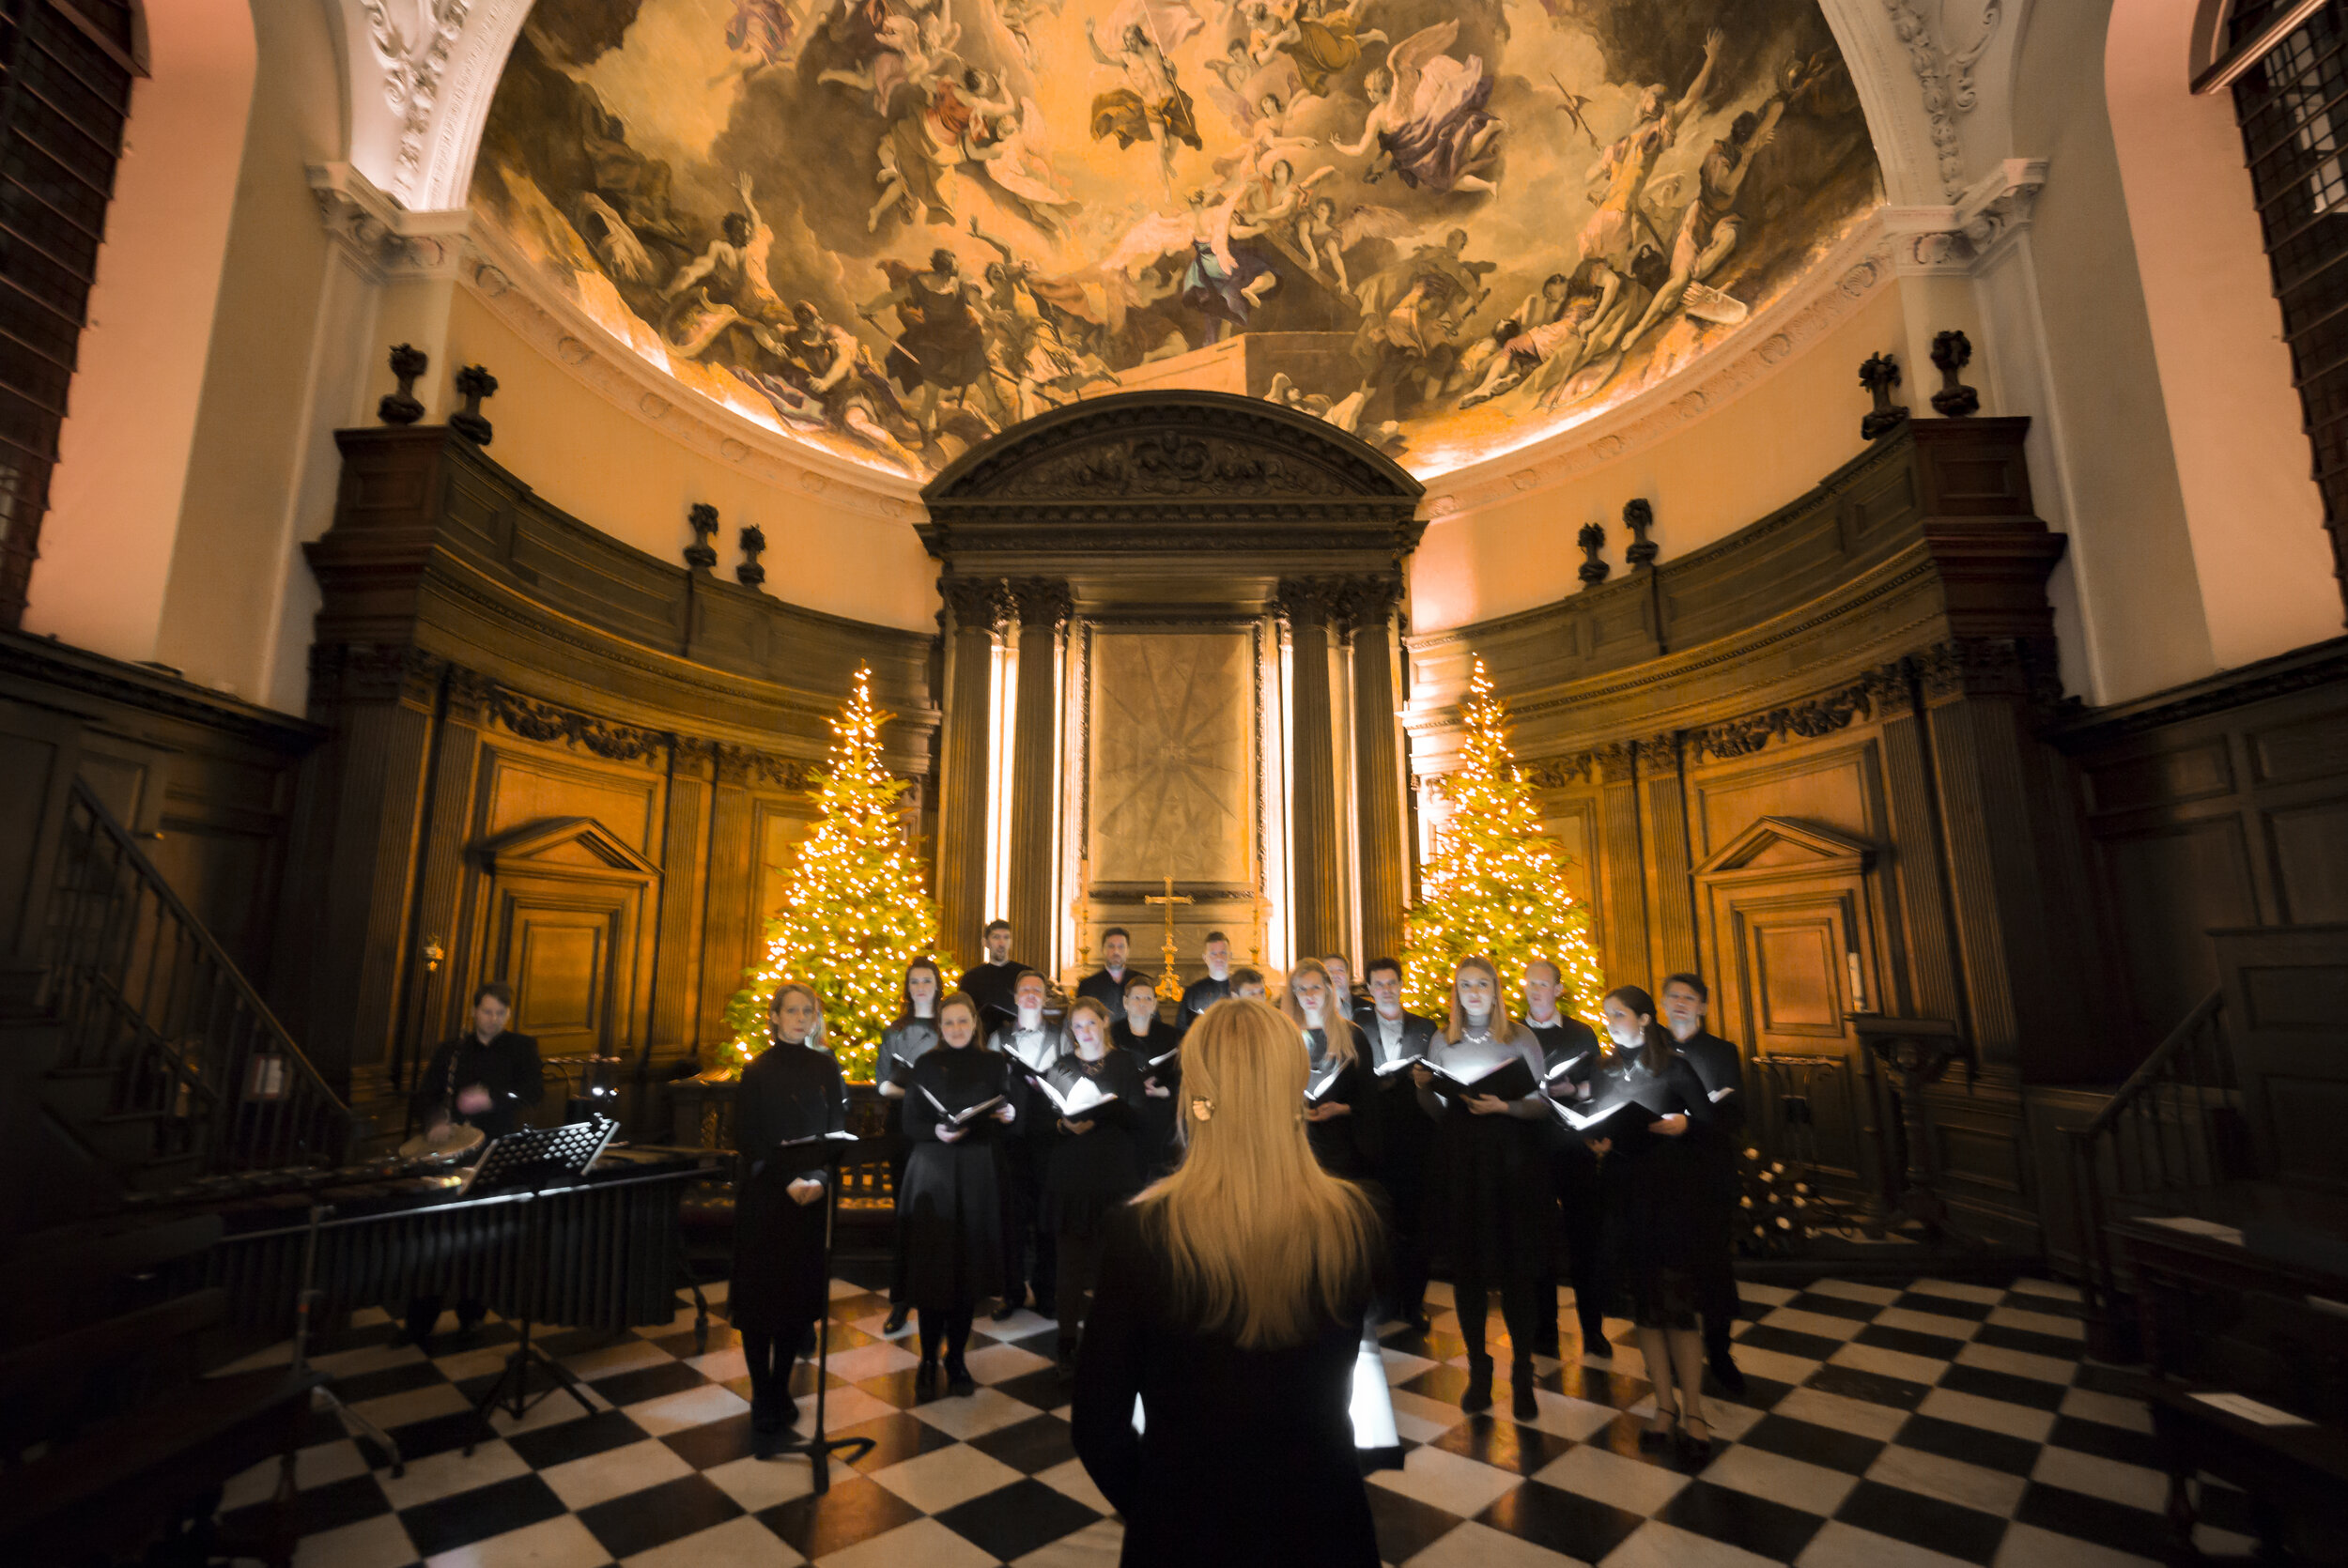 ORA Singers' Christmas Gift for Composers - 3/10/19ORA Singers' launches a new seasonal project, Christmas Gift, aimed at developing composers.